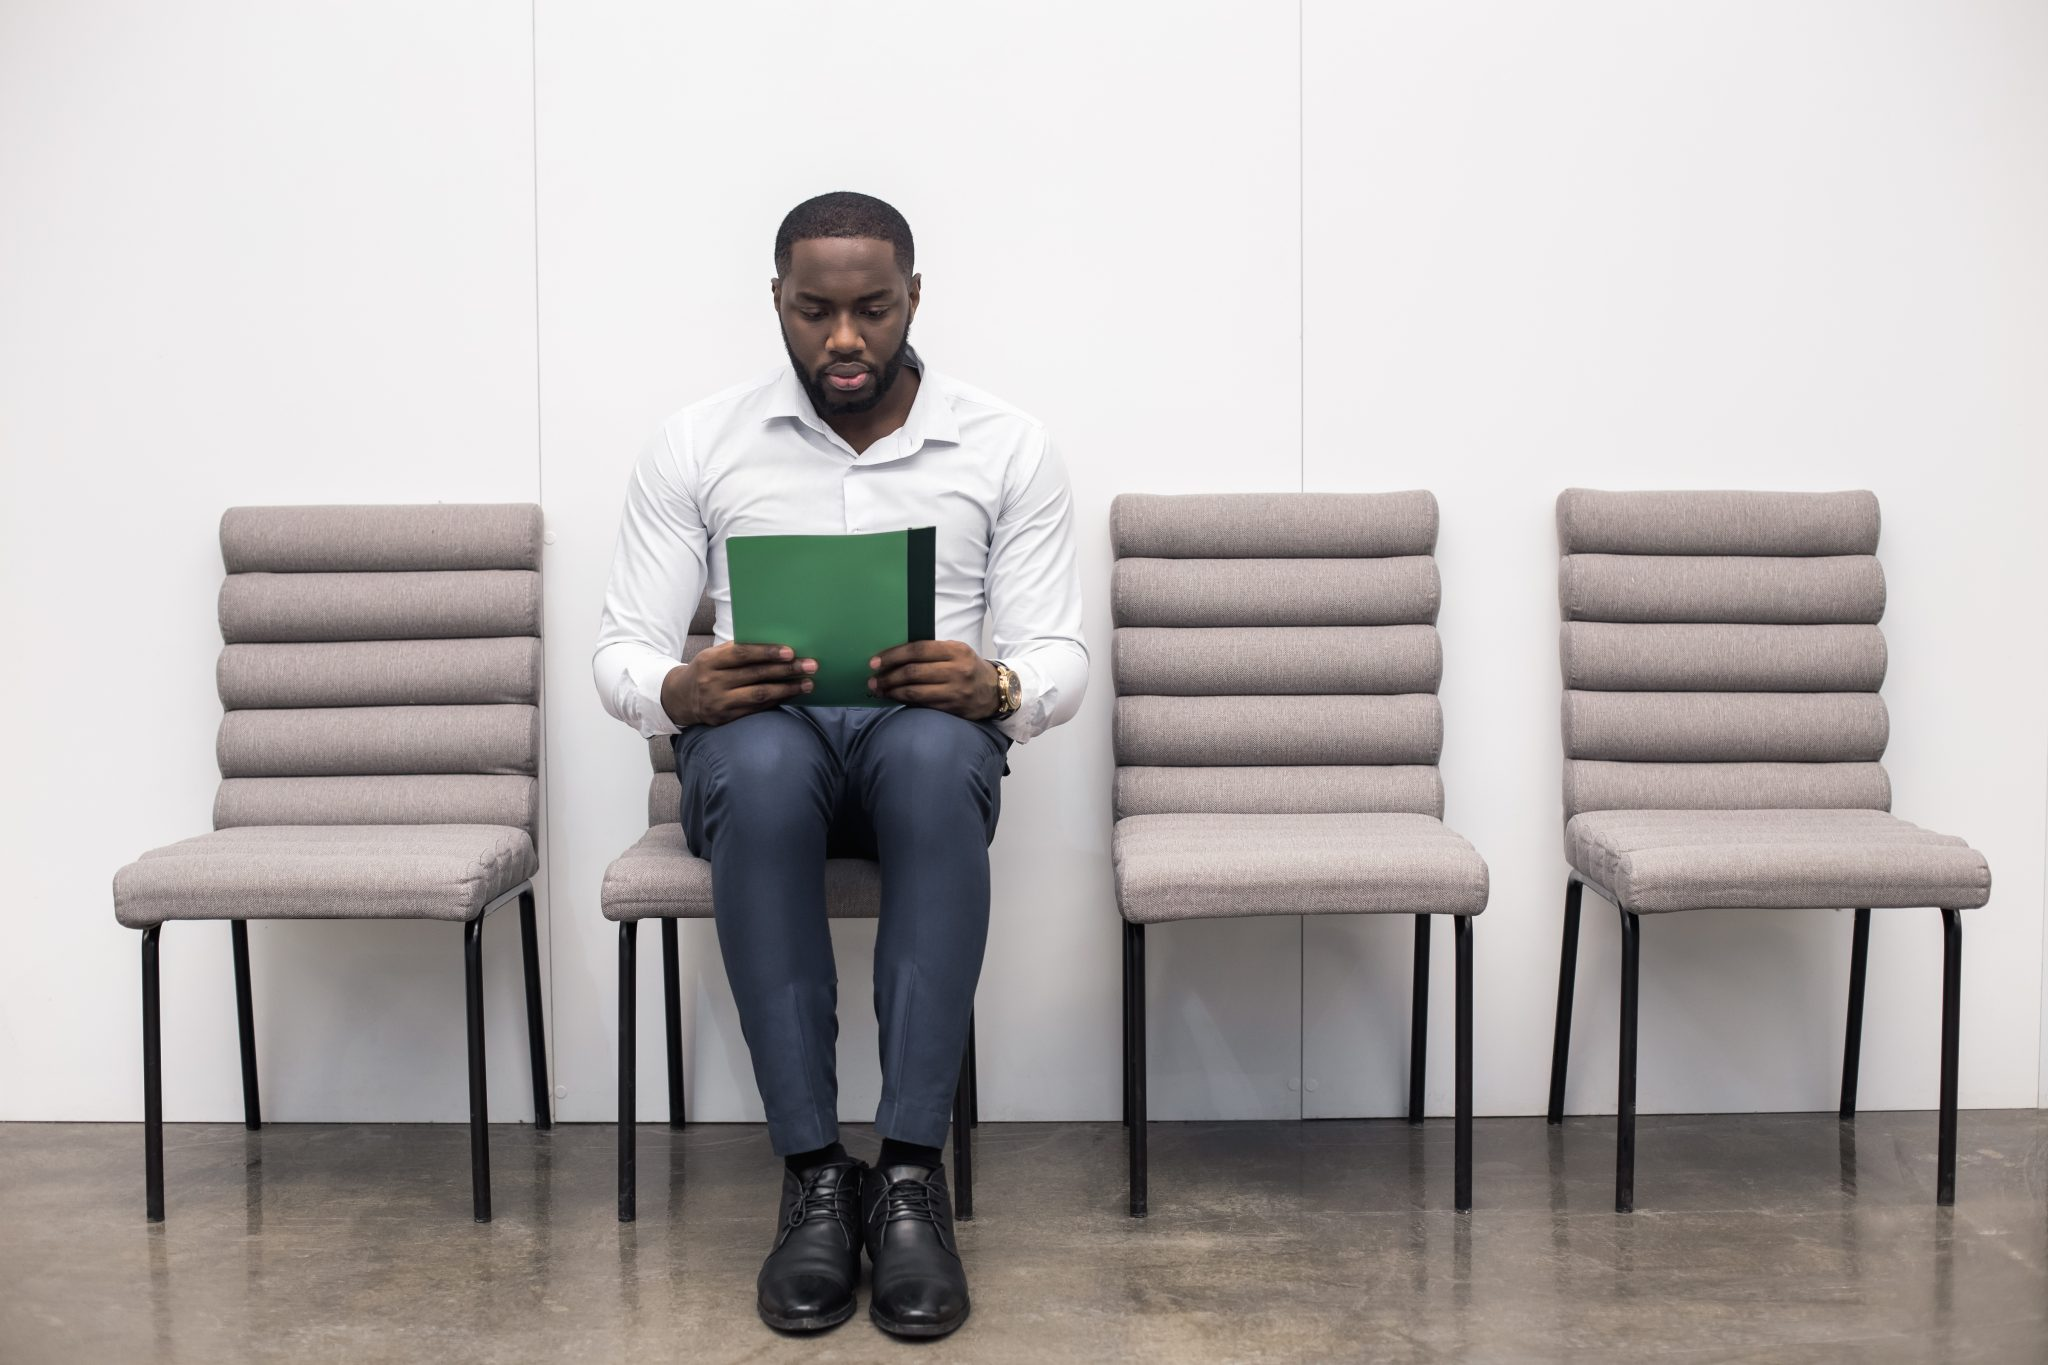 African American man in office. Man sitting, holding his CV and waiting for job interview.